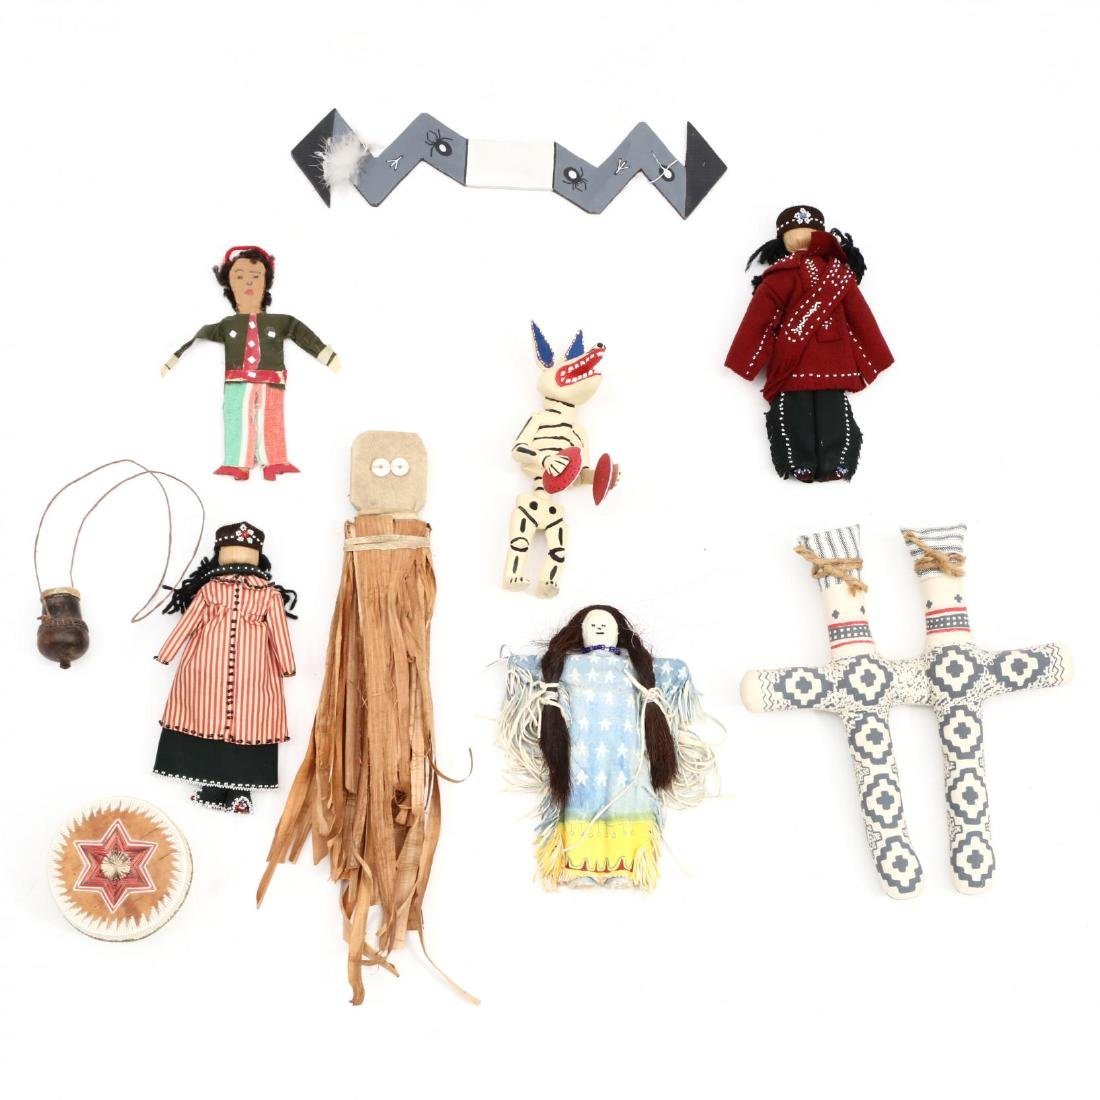 A Group of Ethnic Souvenir Items